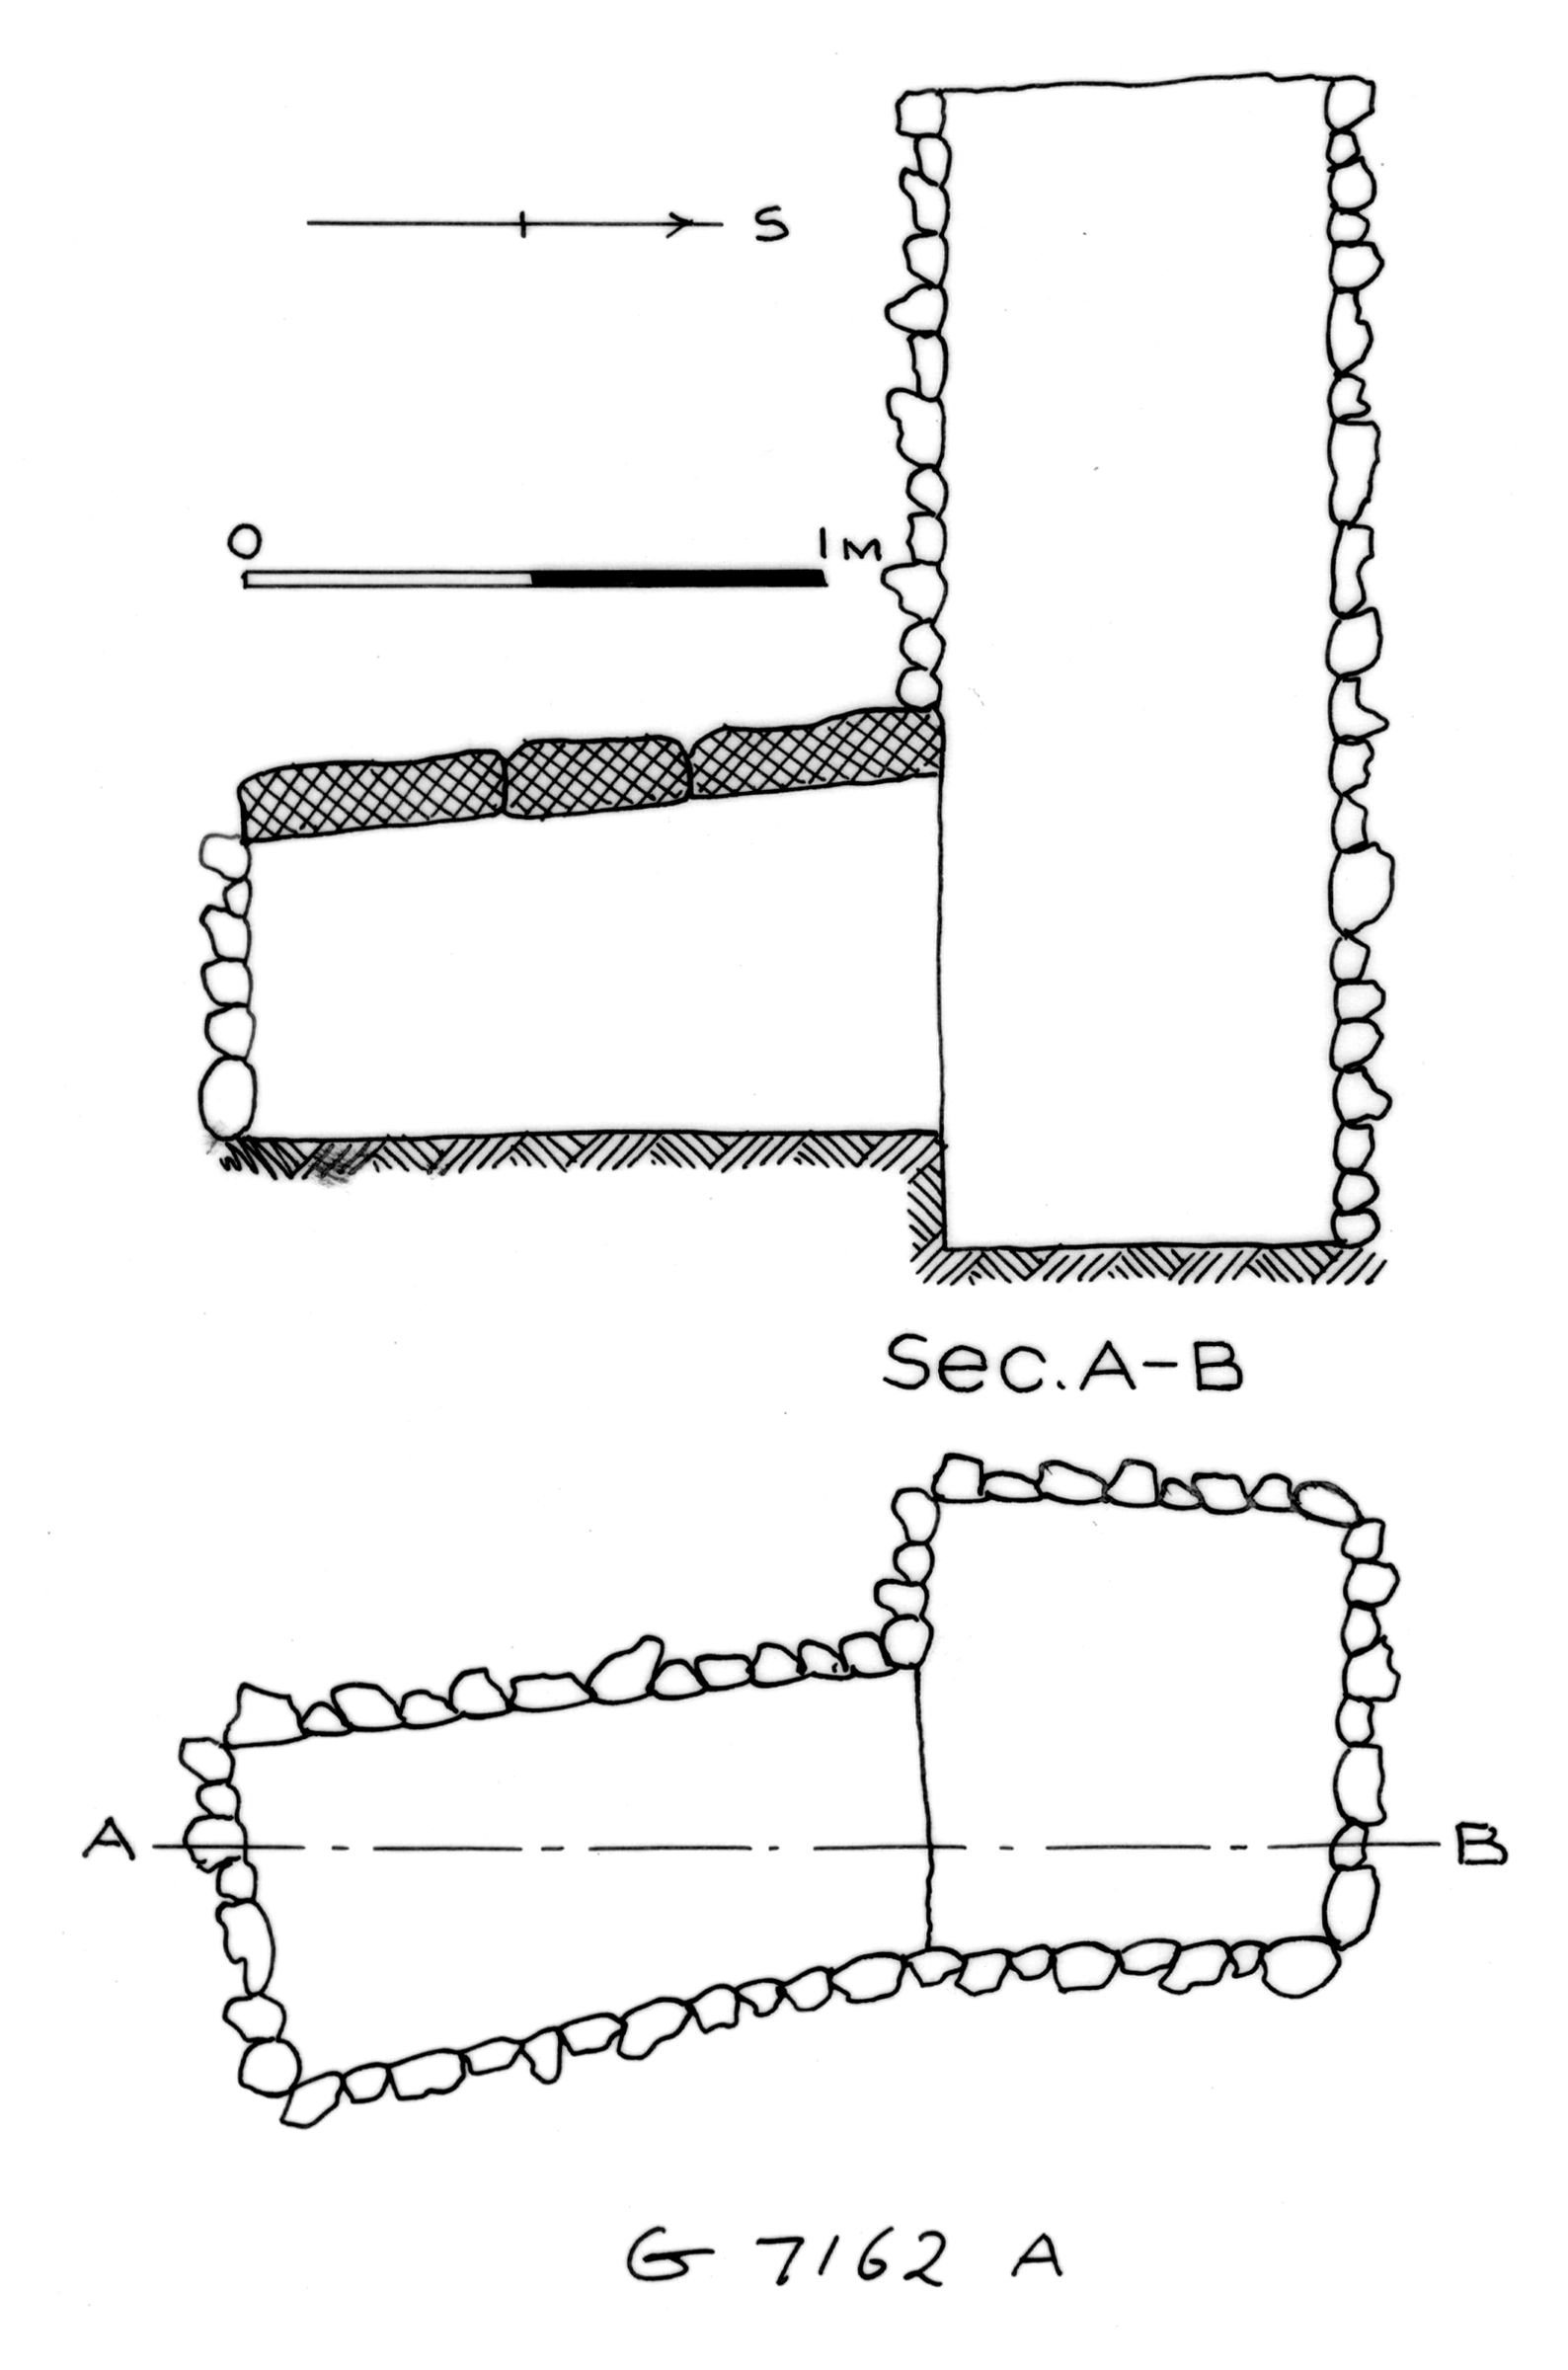 Maps and plans: G 7162, Shaft A